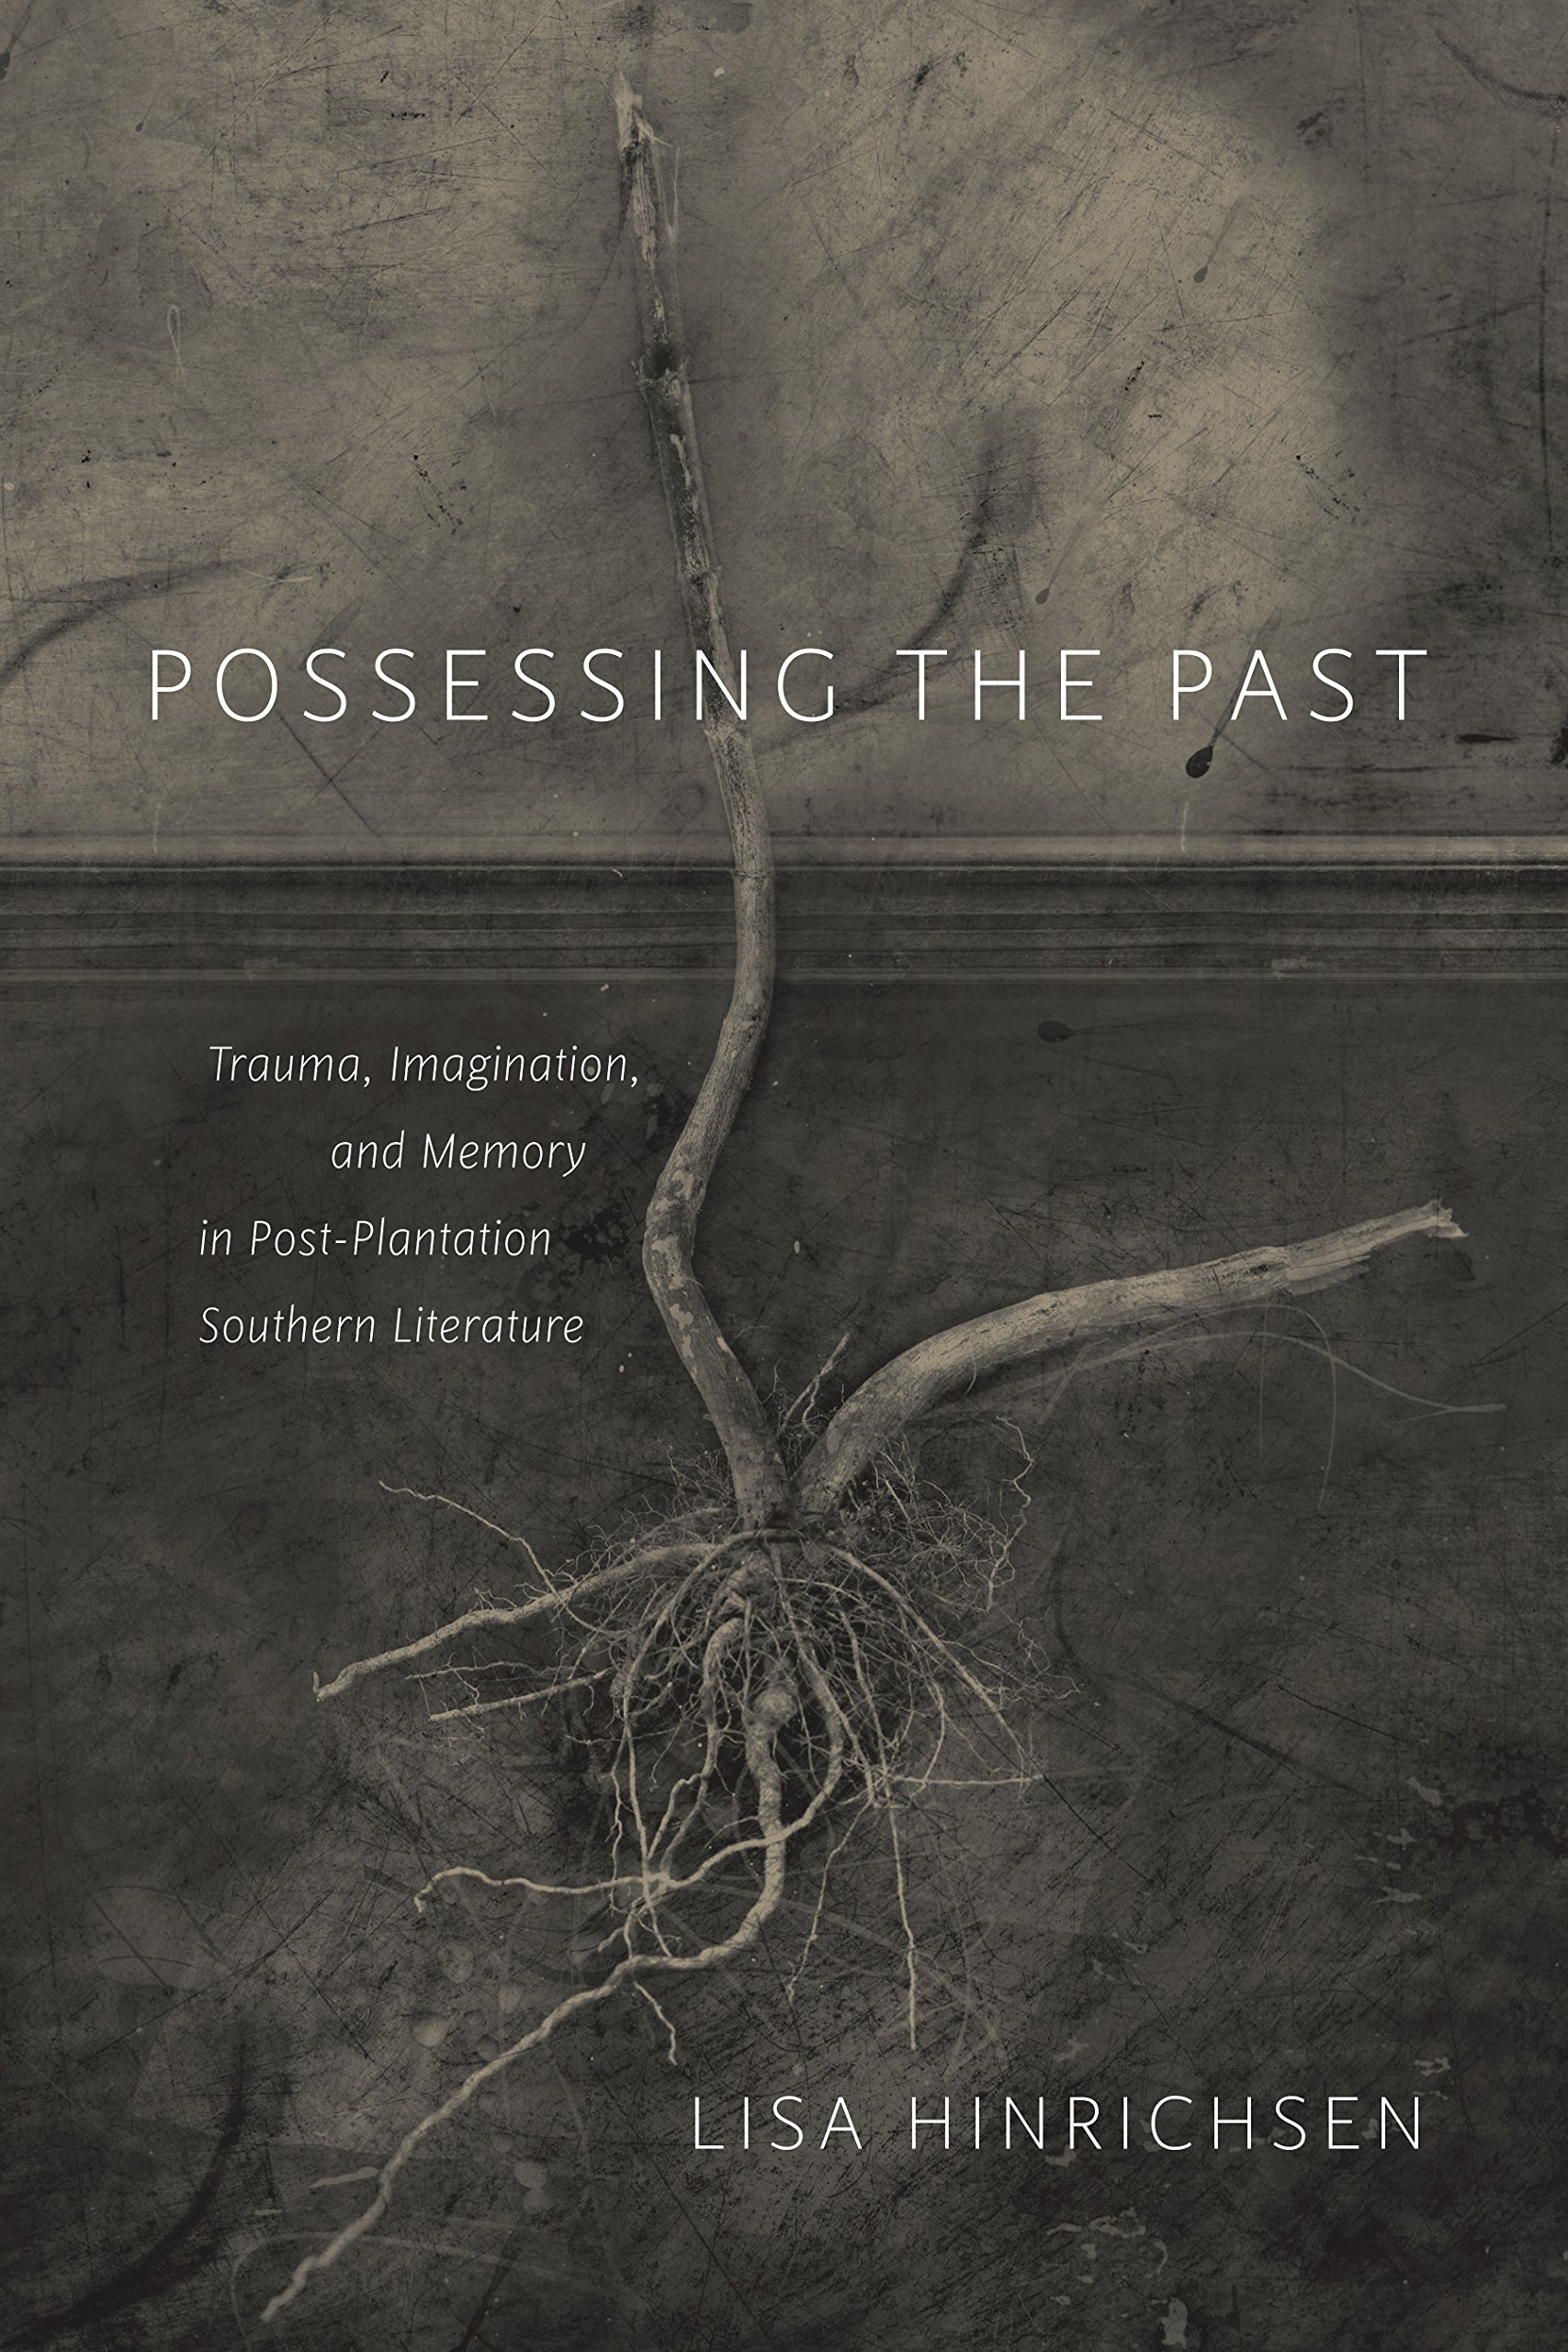 A Root From My Yard  (Book Cover)  Possessing the Past  By Lisa Henrichsen 2013